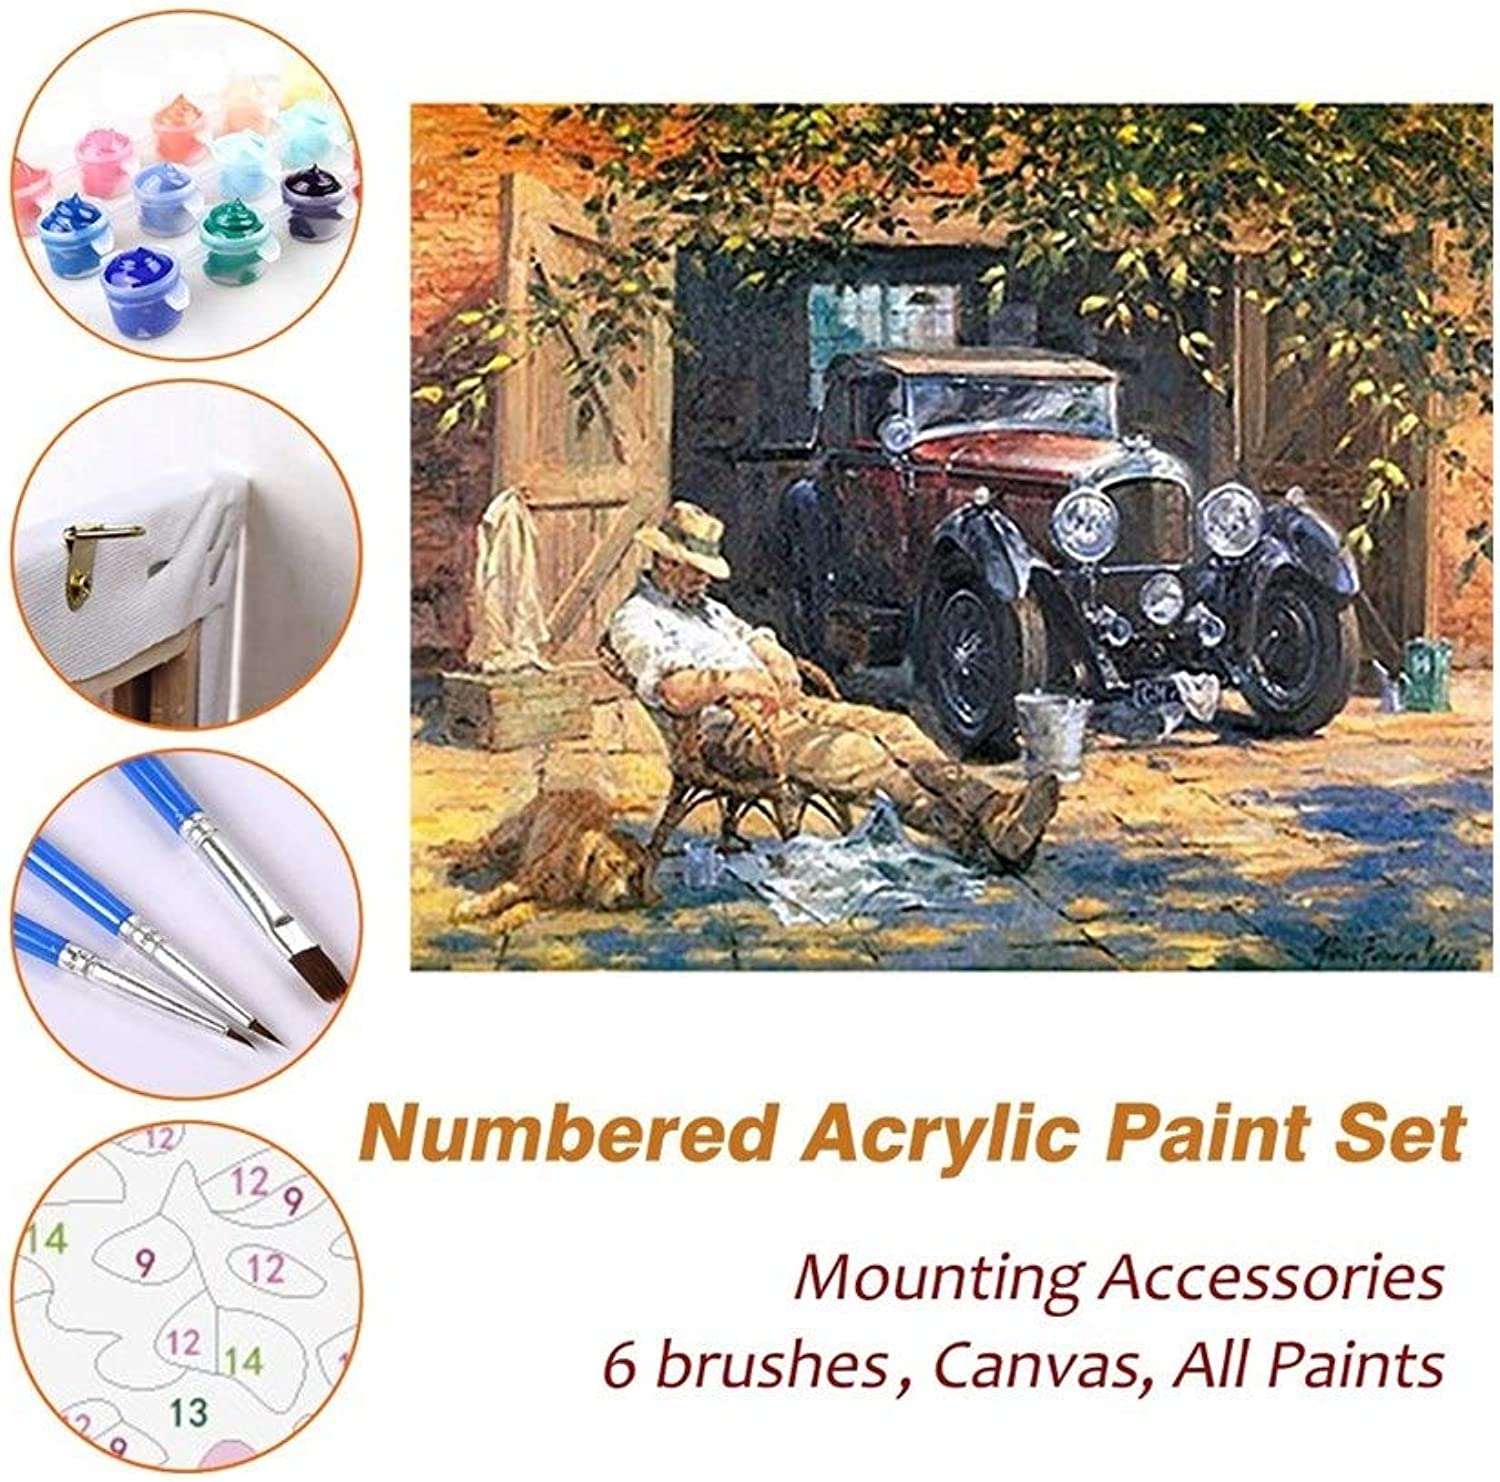 Puzzle House Paint Max Paint By Numbers Kits For Kids Adults Beginner Teens Pine Framed DIY Oil Acrylic Painting Paint Art Brush Sets, Country Nap 527 (color   With Pine Frame, Size   500mm x 650mm)